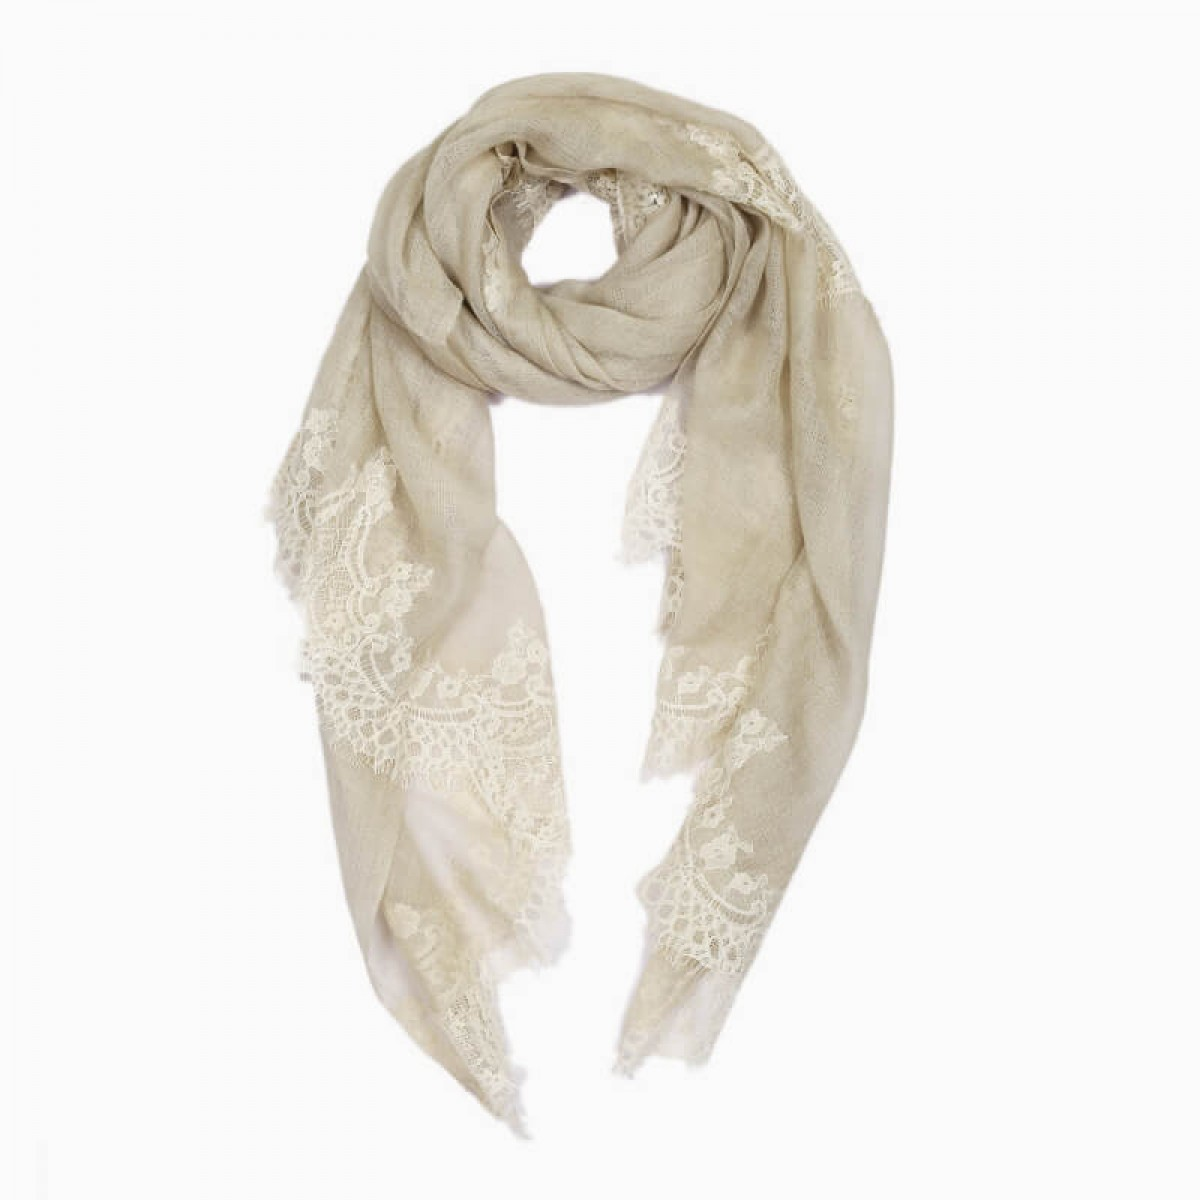 Lace Sheer Pashmina Scarf - Light Beige